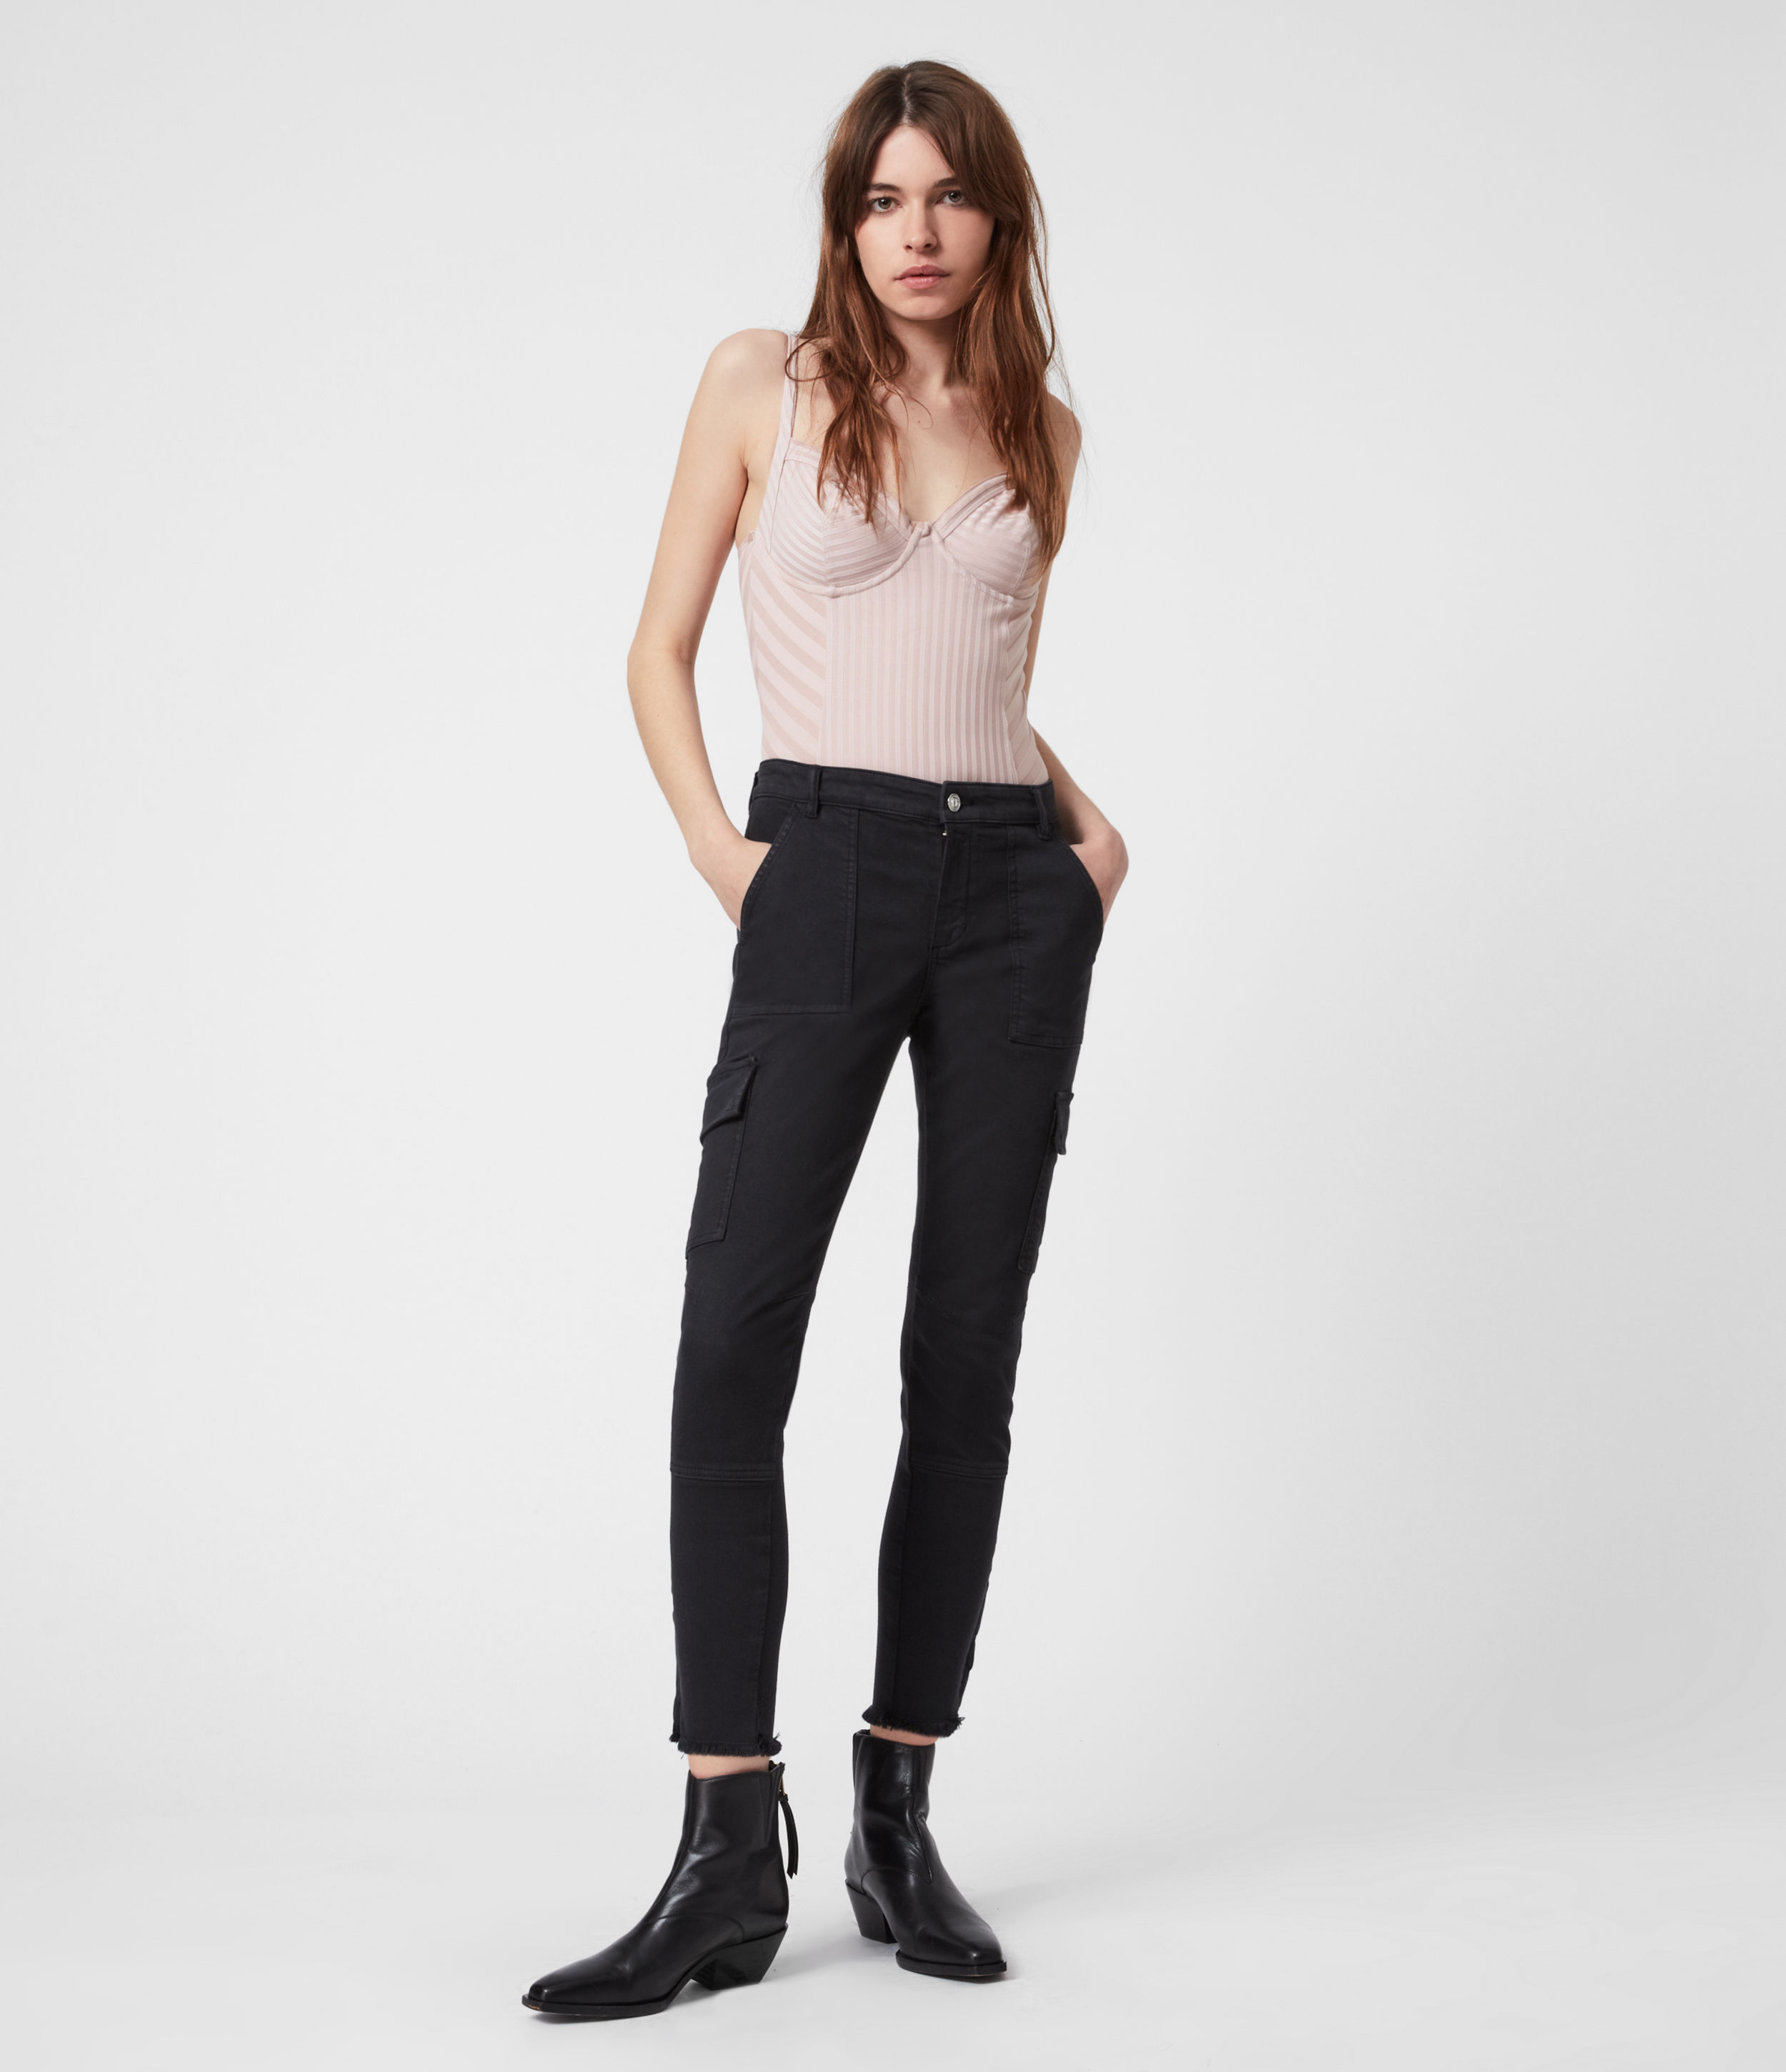 AllSaints Duran Mid-Rise Superstretch Skinny Cargo Jeans, Black